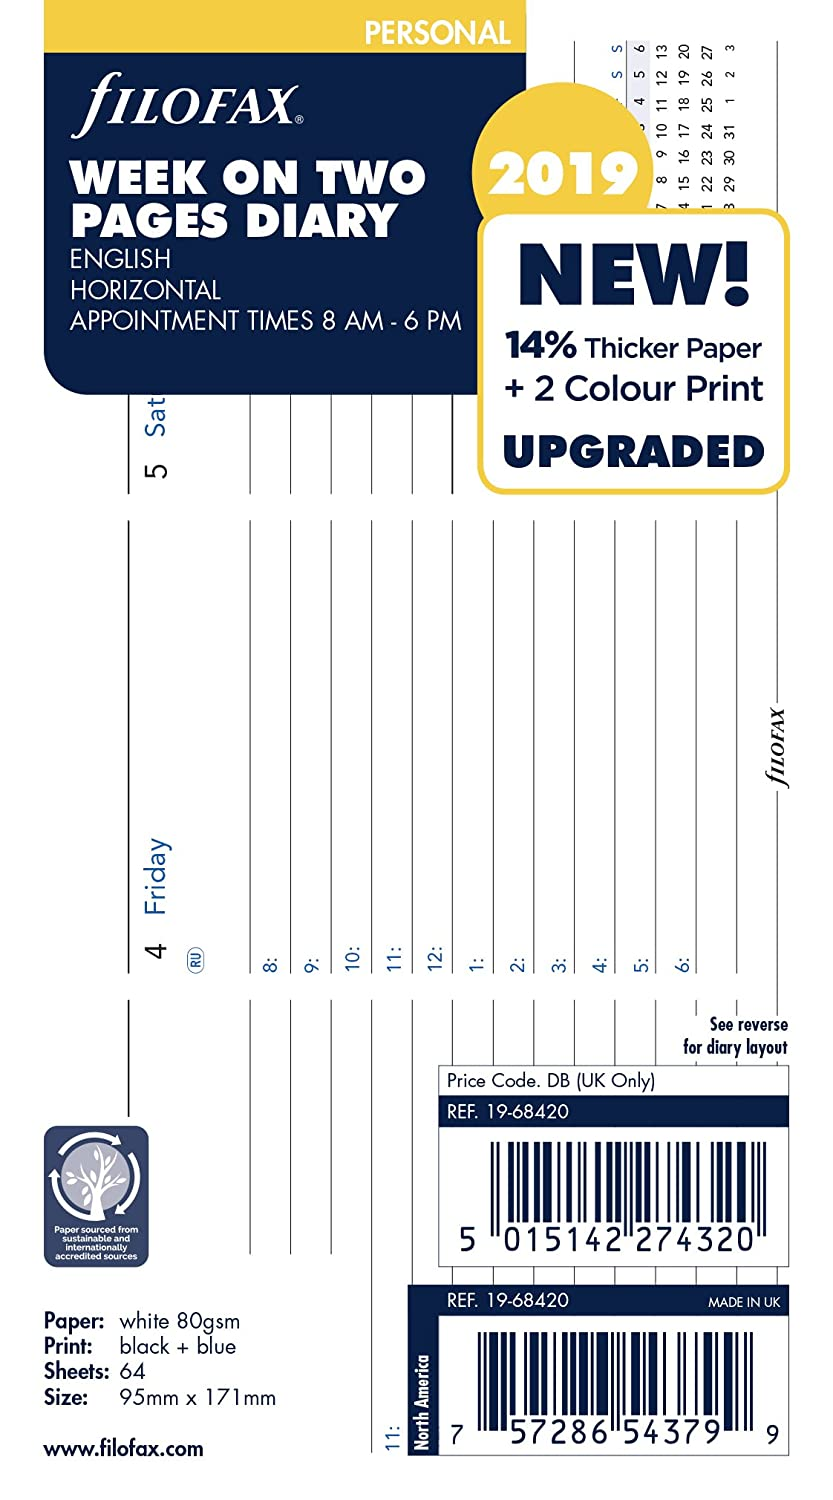 Filofax 19-68420 Personal Week On Two Pages 2019 Horizontal Appointments Diary